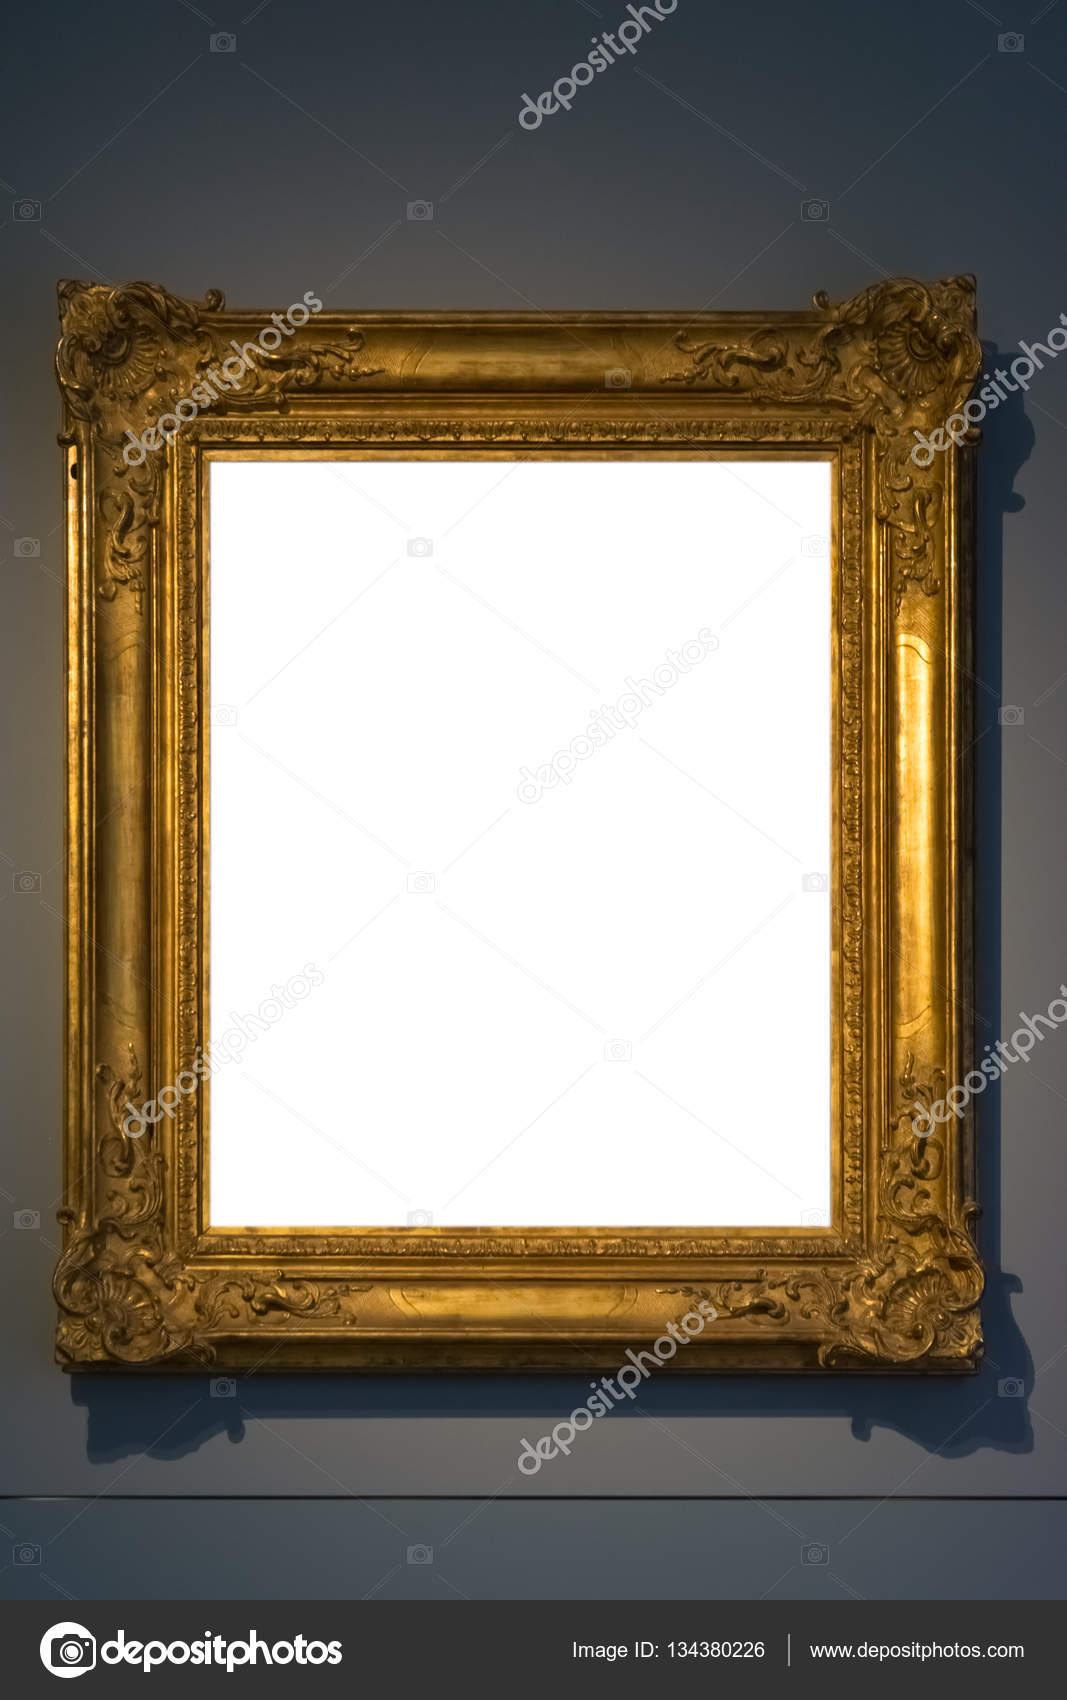 Art Museum Frame Vintage Ornate Painting Picture Blank Clipping ...